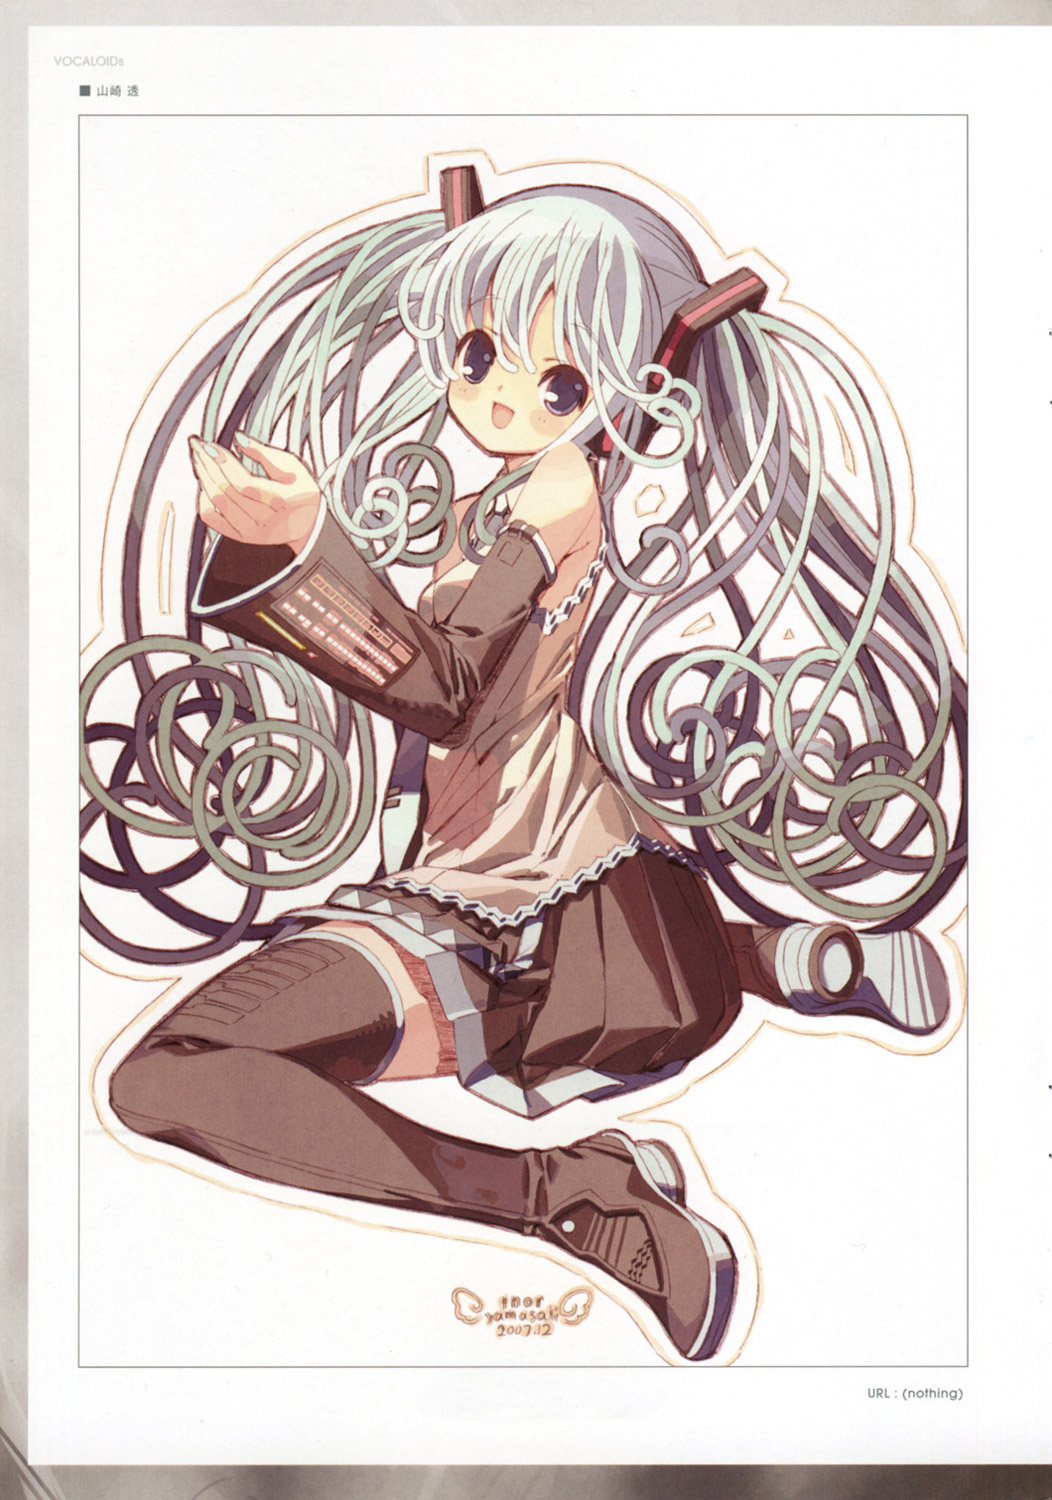 Vocaloid's unofficial illustrations image by Various Artists